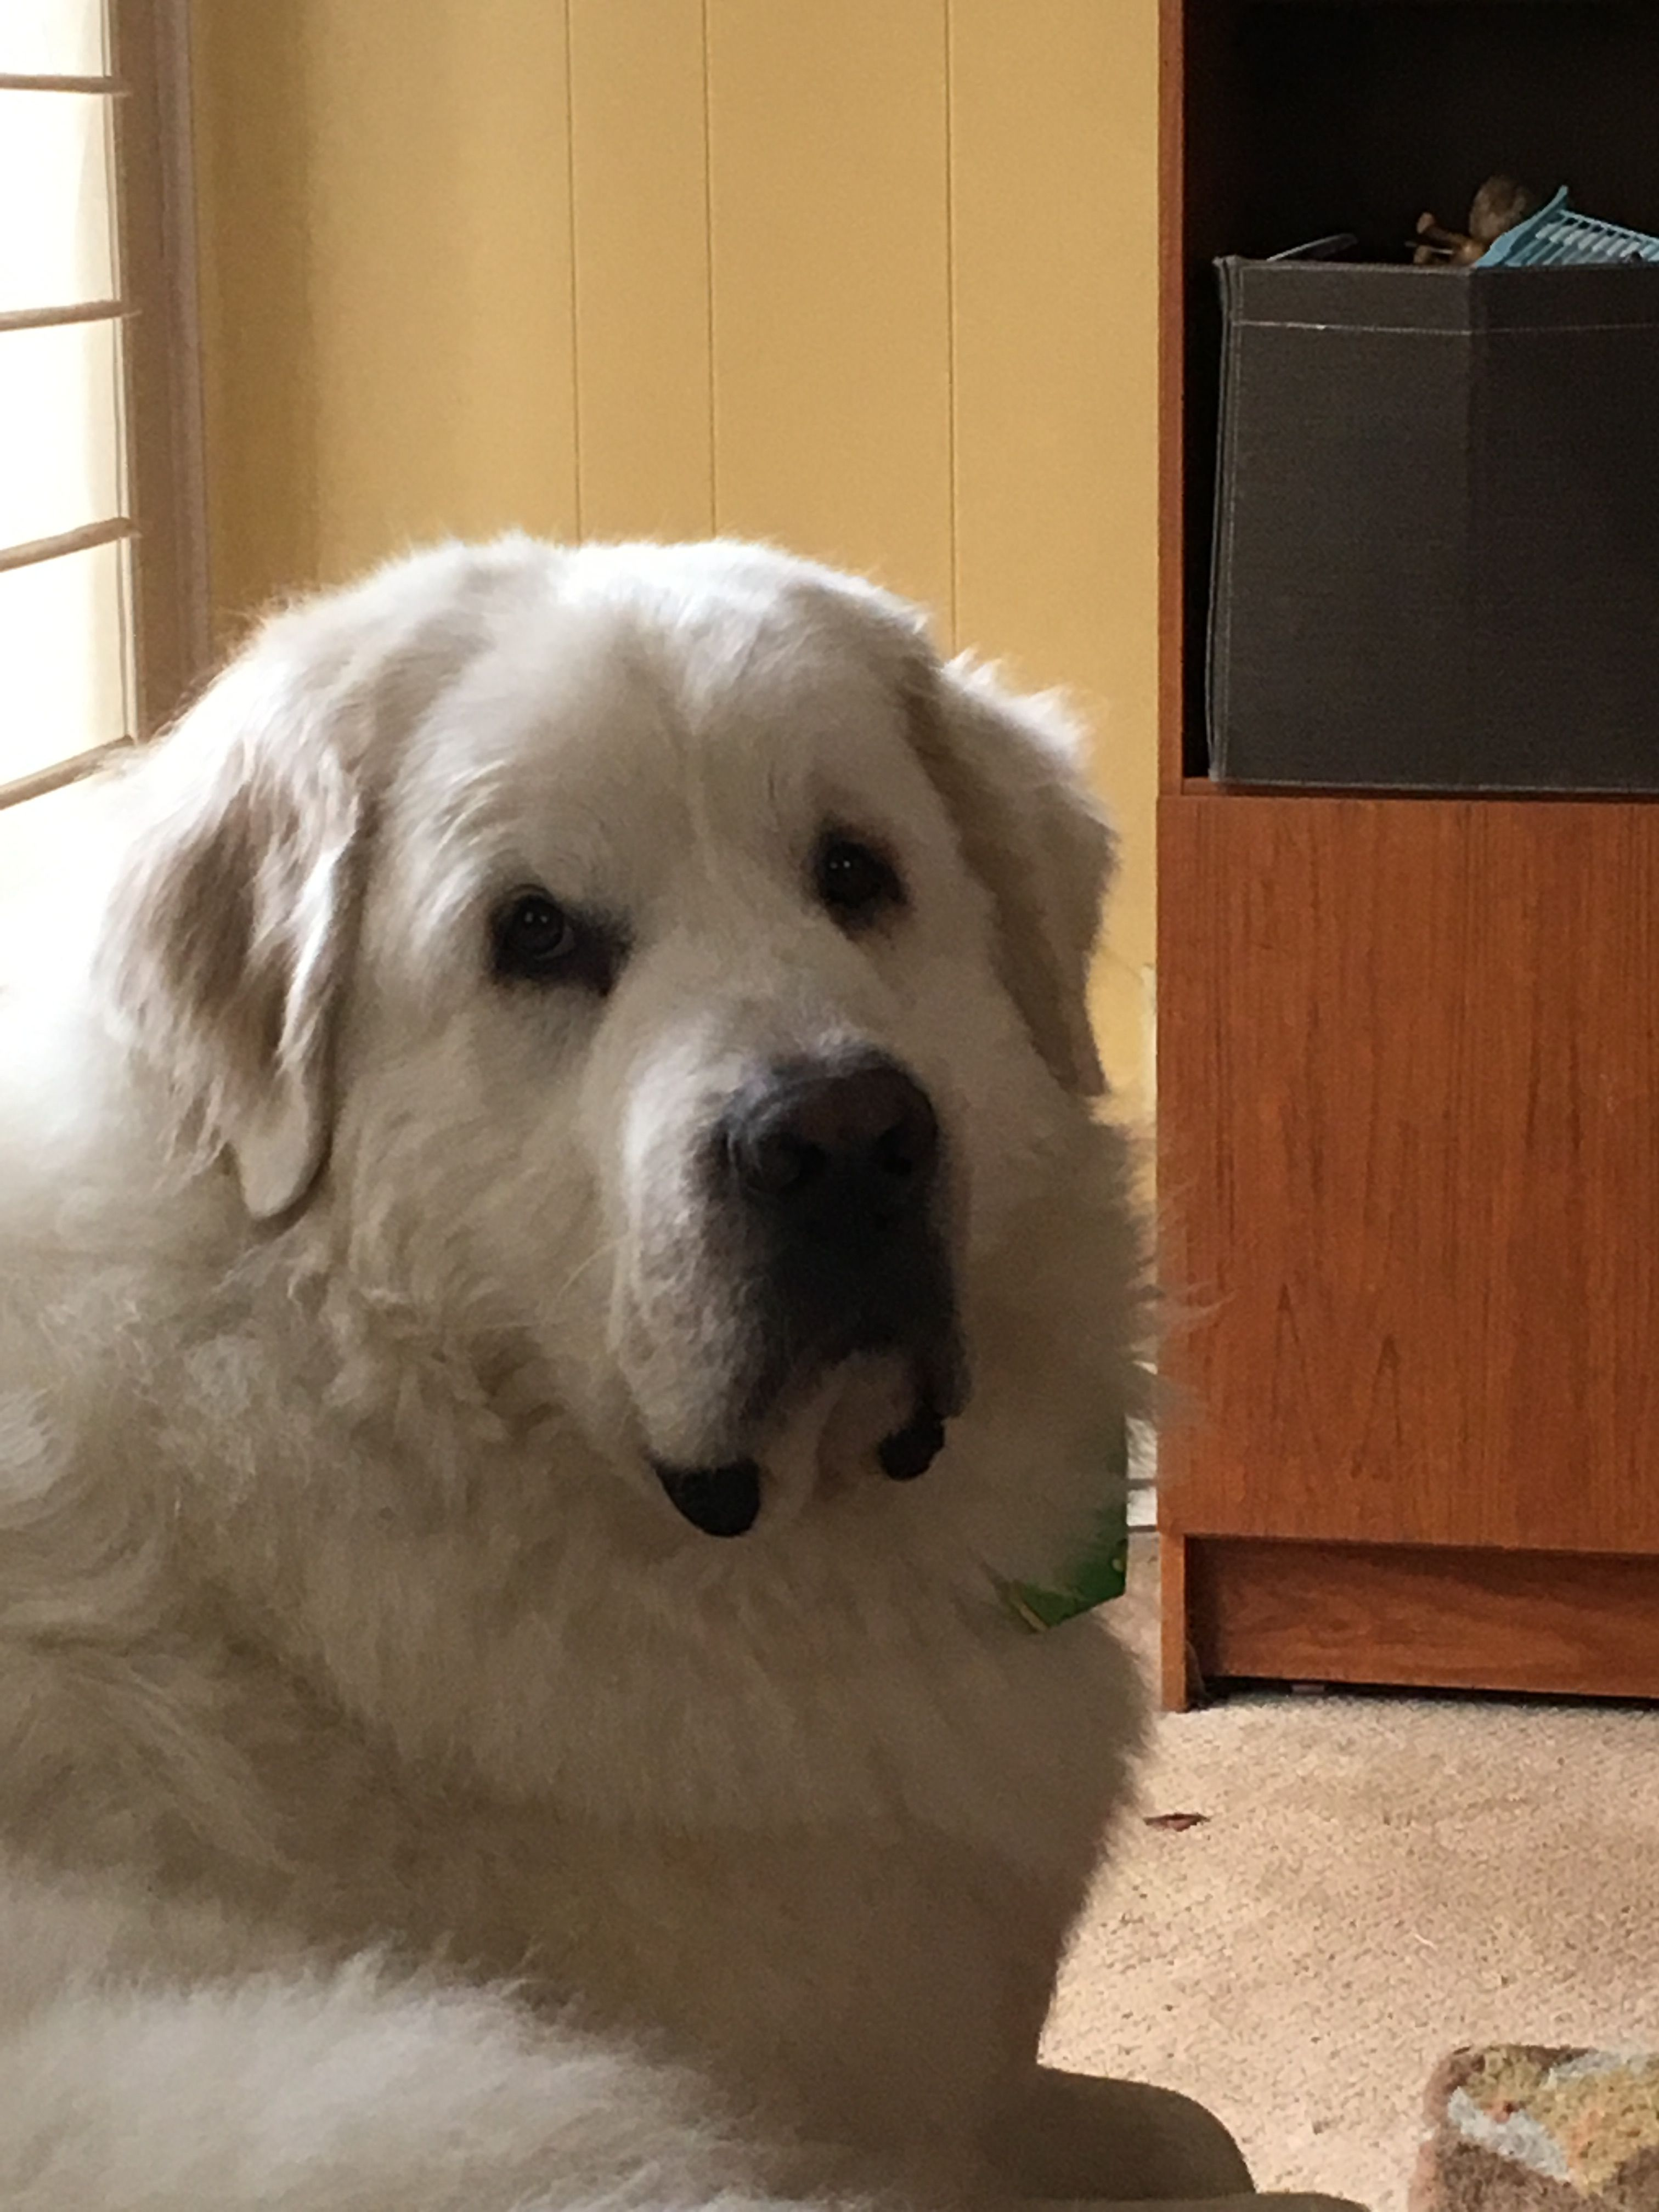 My Great Pry Cain Top Dog Breeds Great Pyrenees Maremma